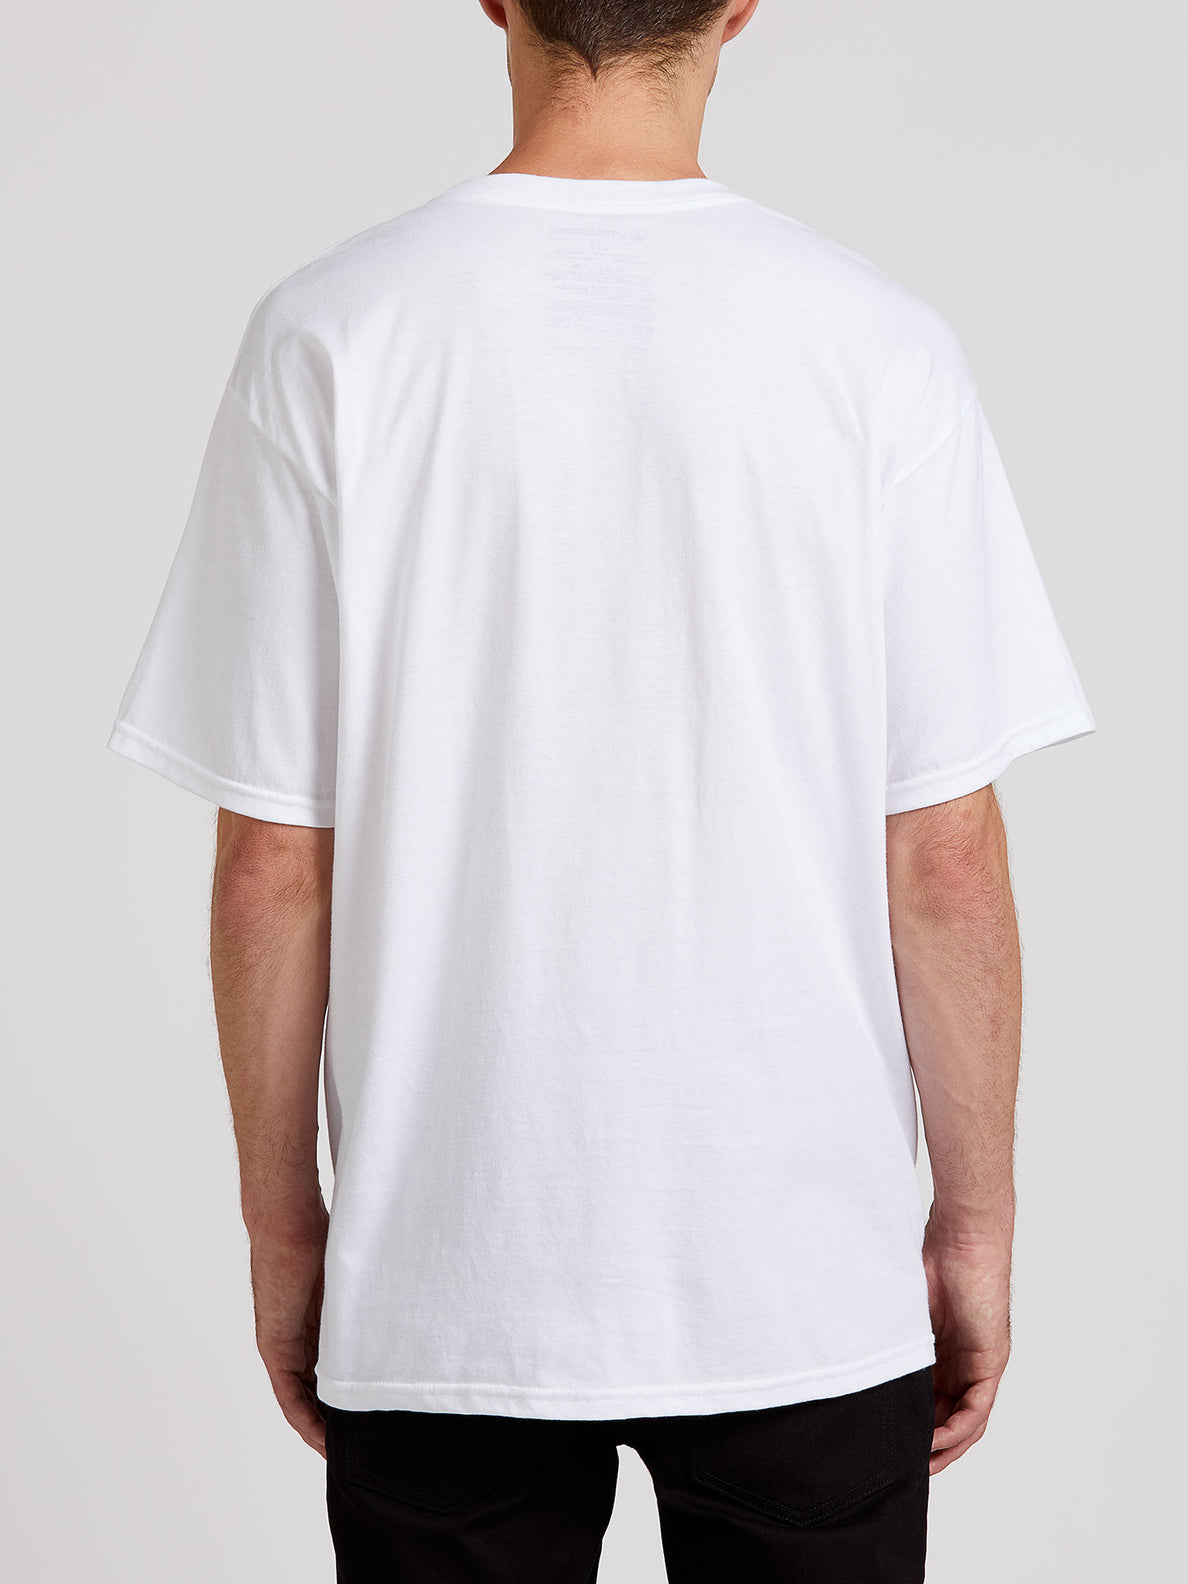 Yew Short Sleeve Tee - White (A3522008_WHT) [B]